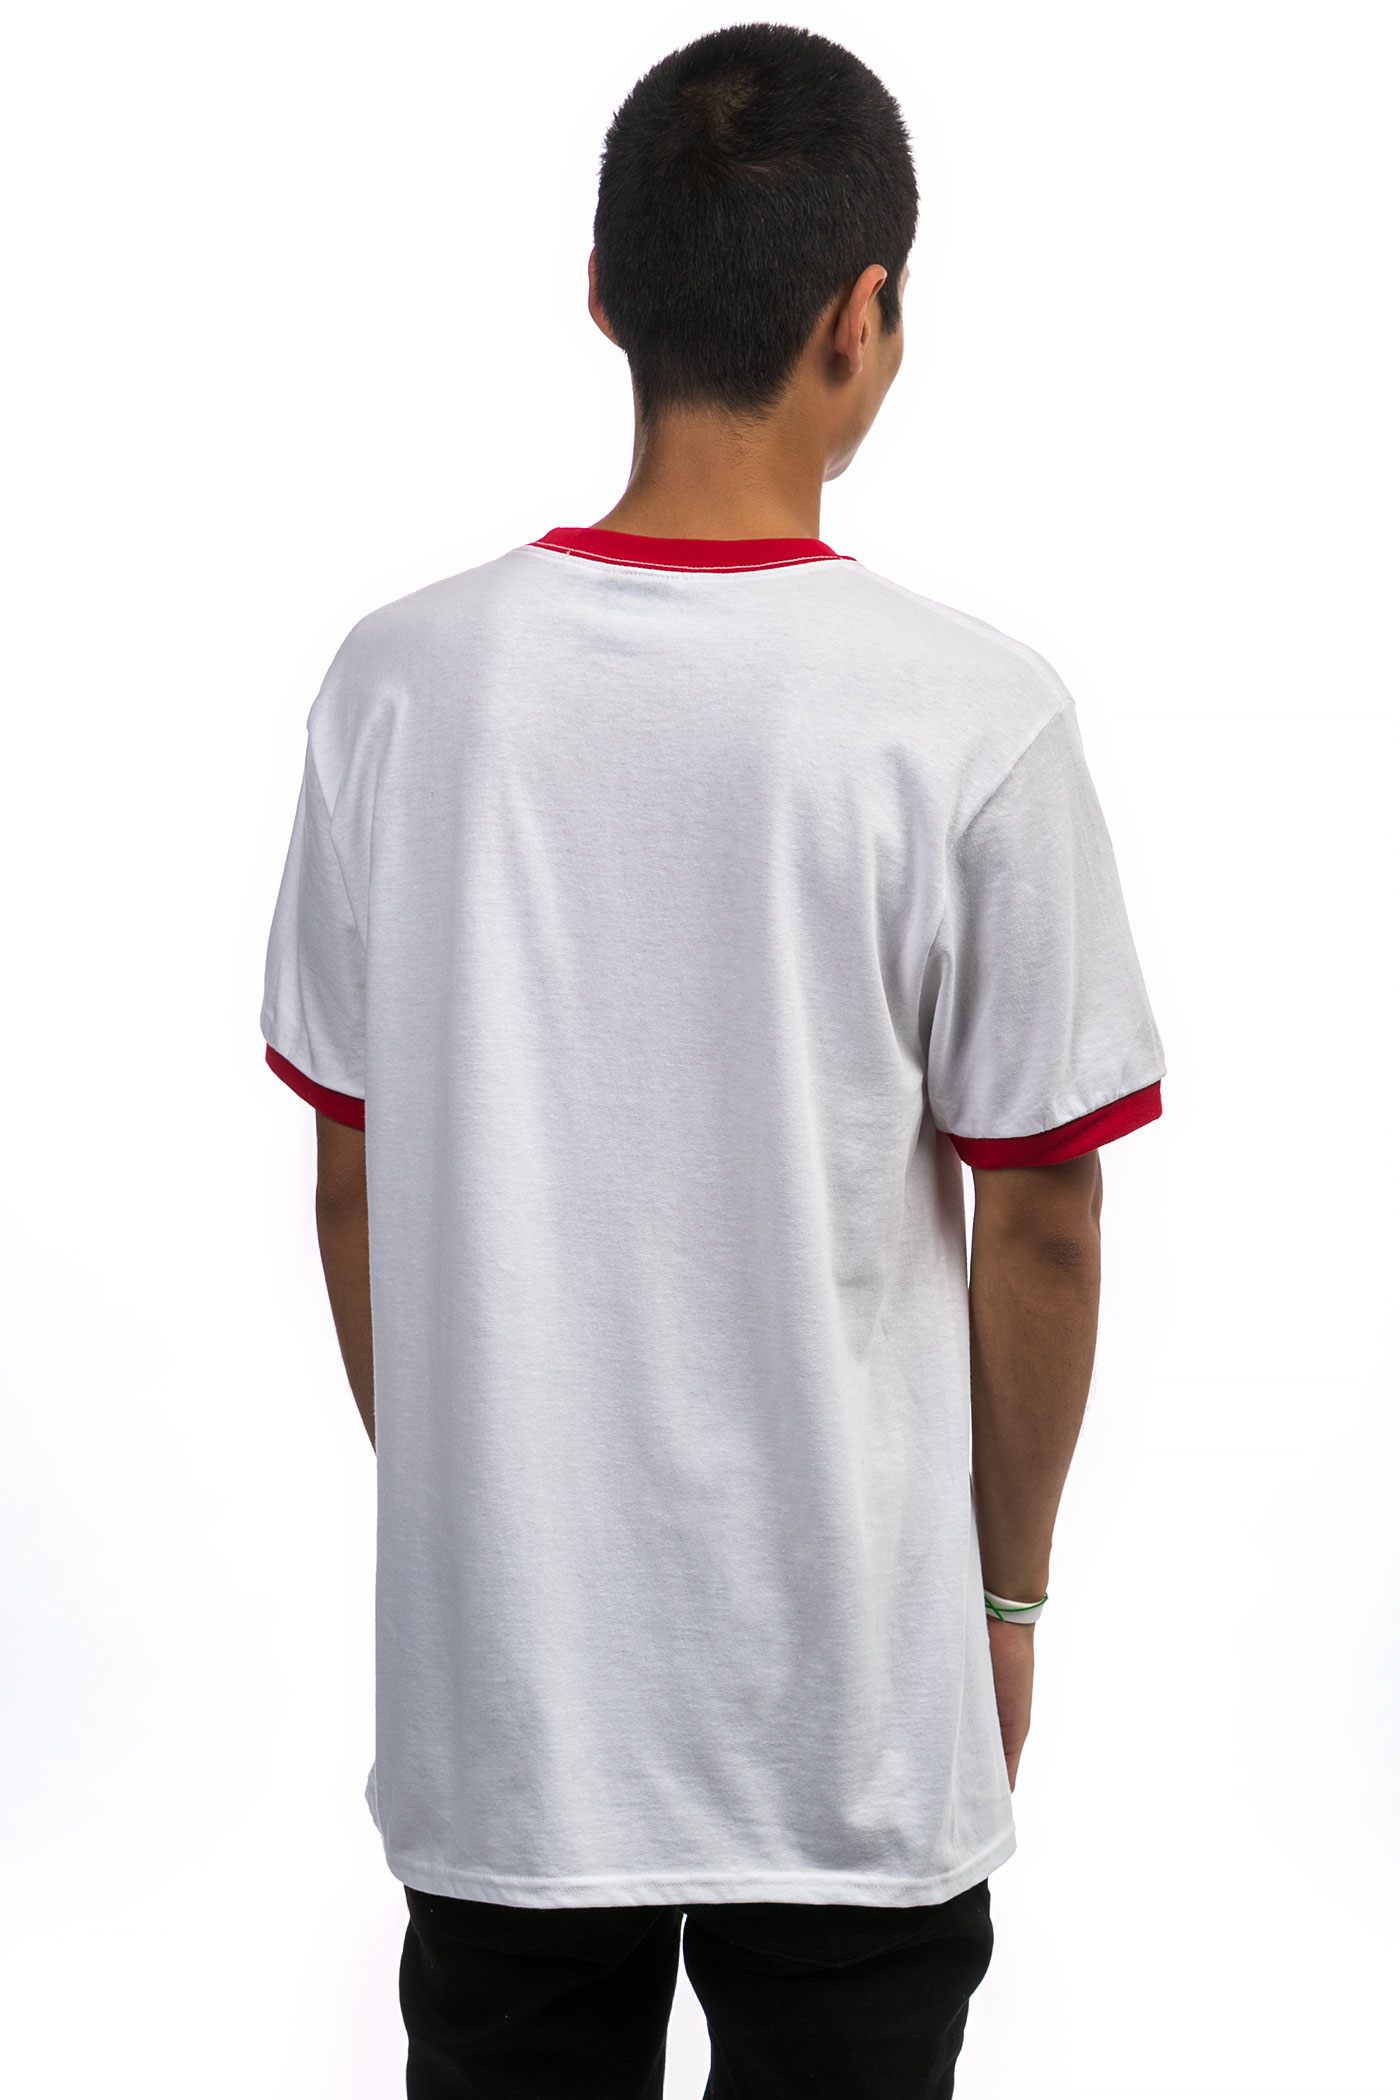 HOCKEY Battery T-Shirt (white) buy at skatedeluxe 981f65ad2